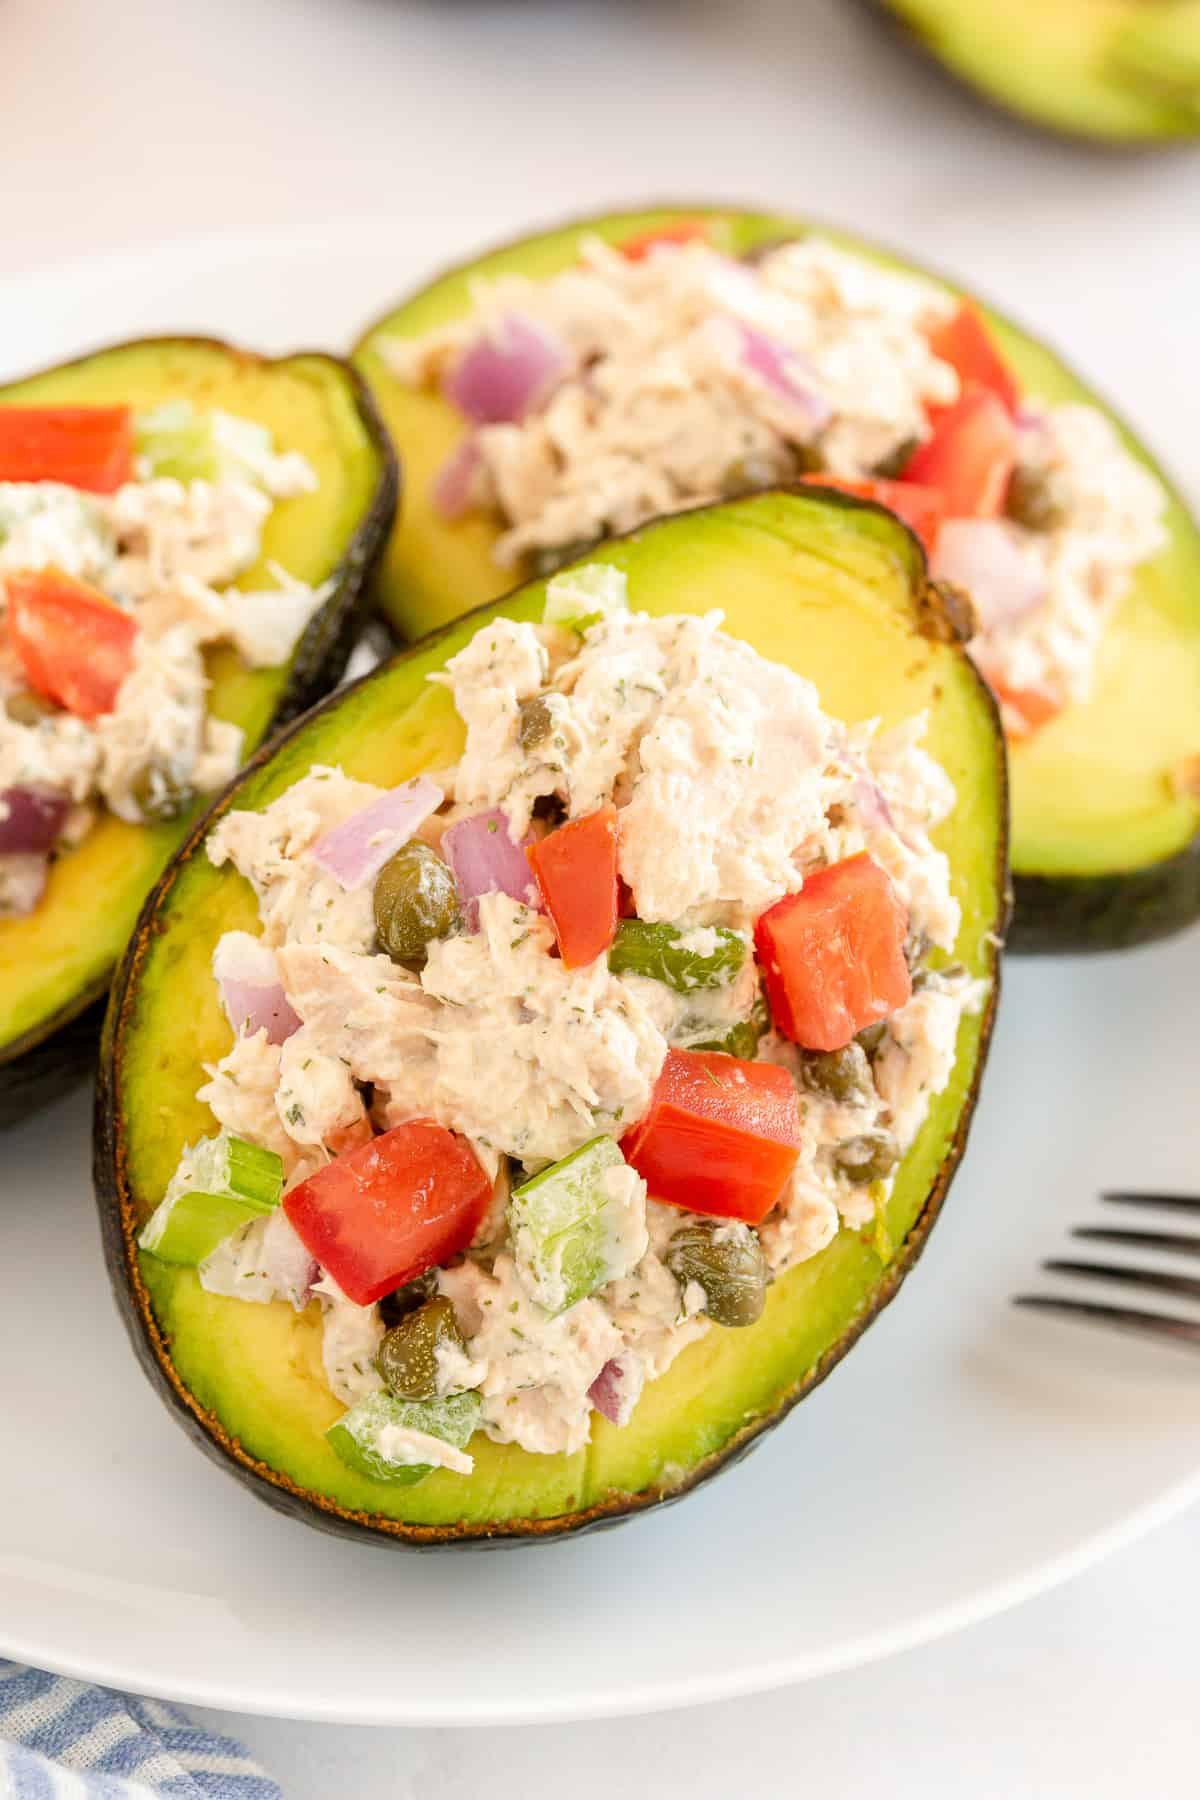 A half of an avocado stuffed with tuna resting on two others.